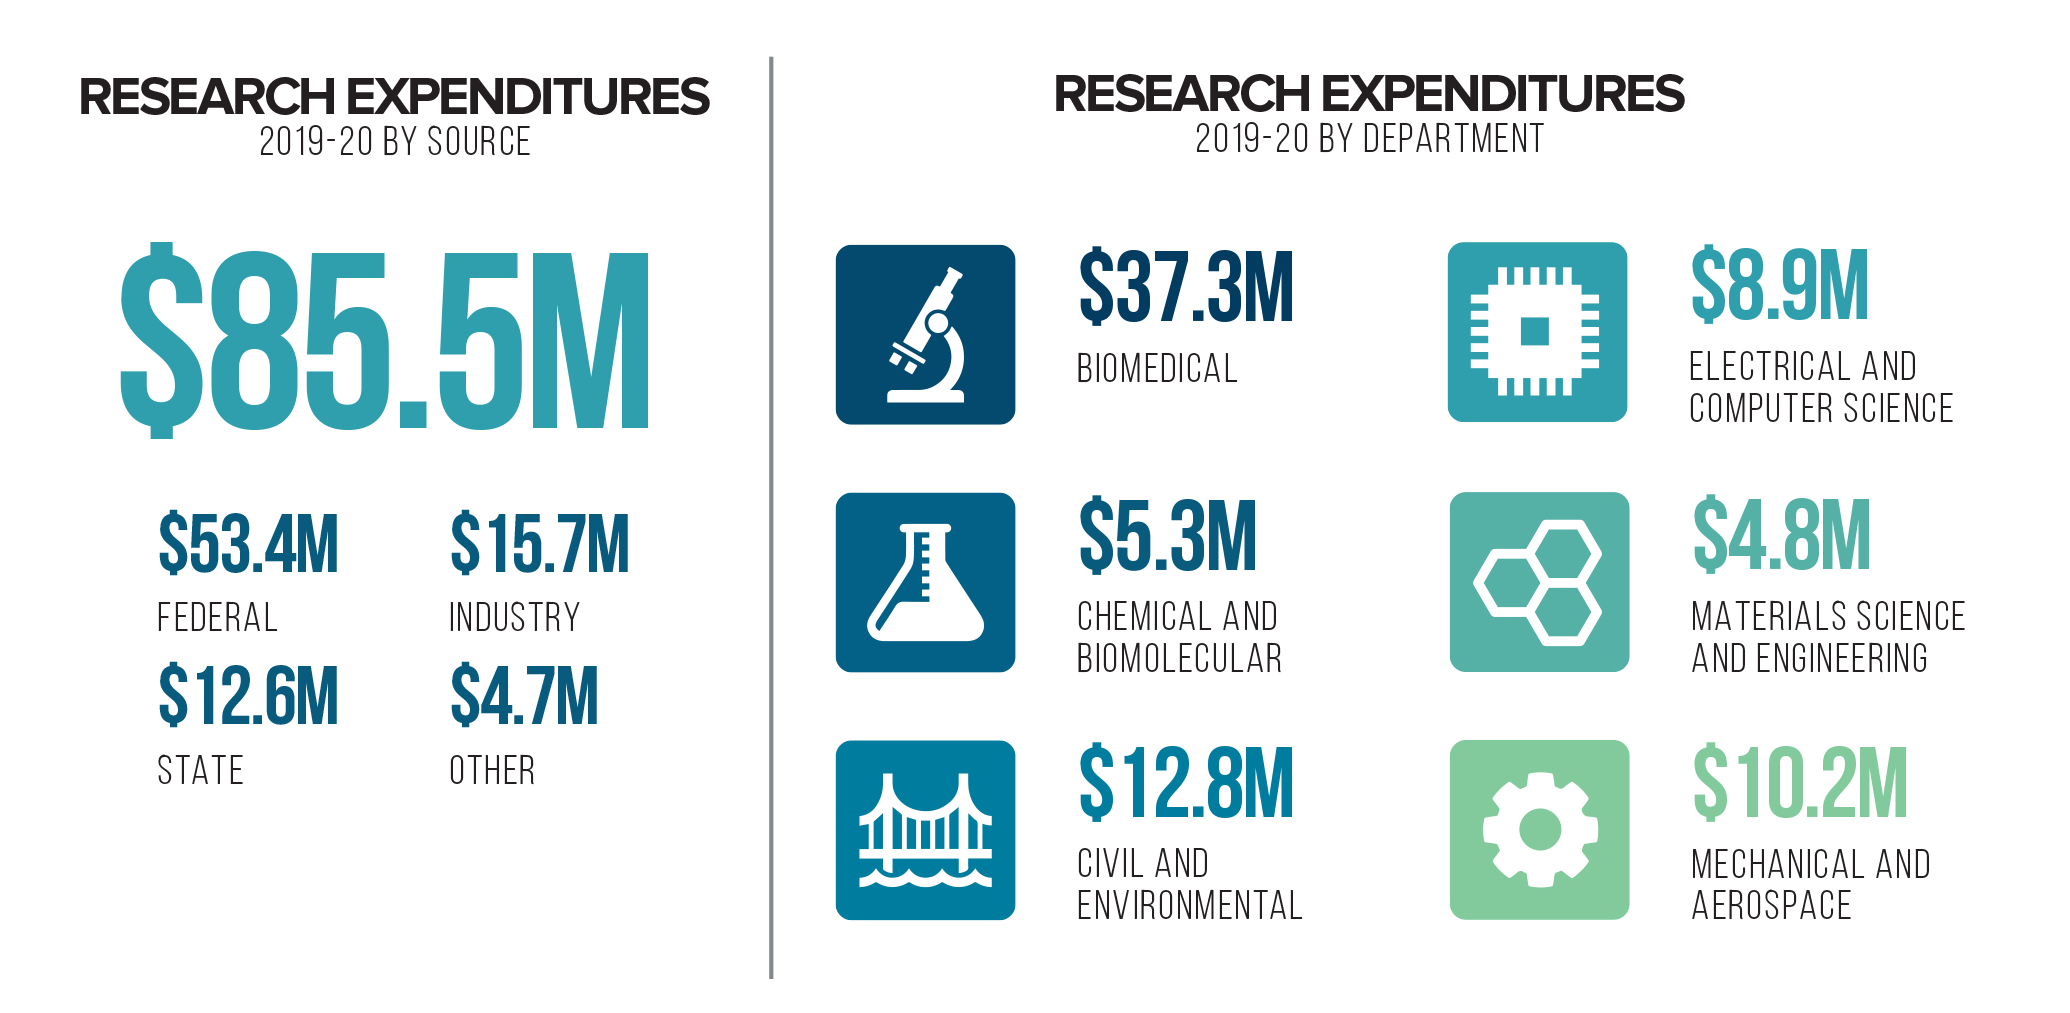 2019-20 Research Expenditures